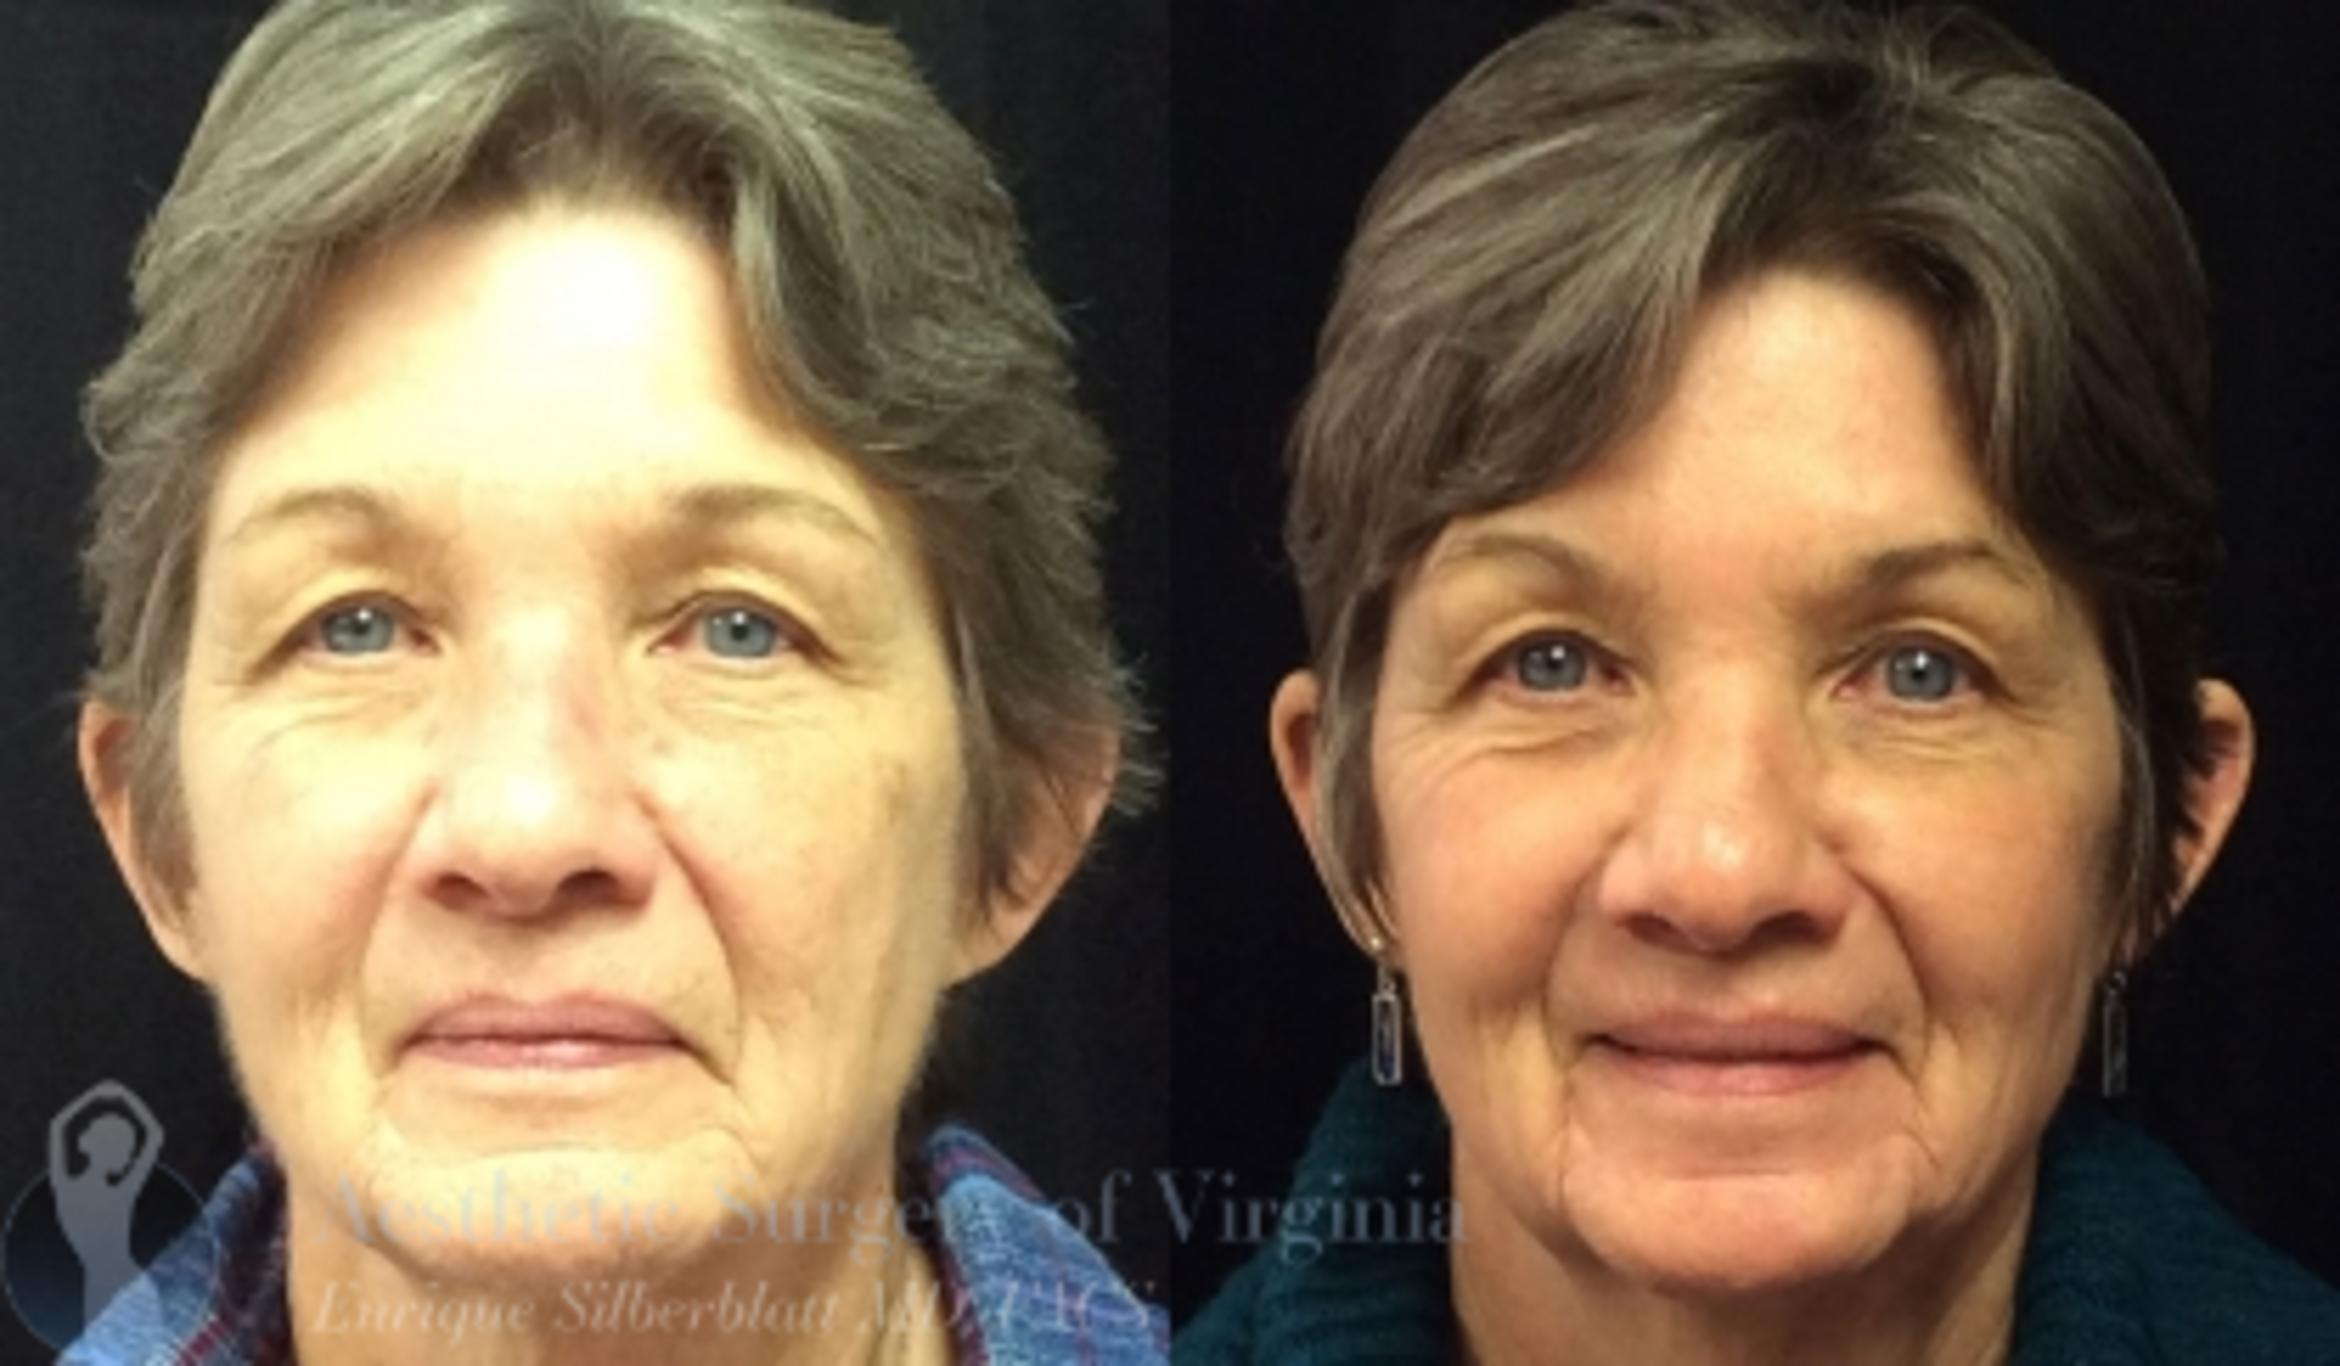 Fraxel® Laser Skin Resurfacing Case 52 Before & After View #1 | Roanoke, VA | Aesthetic Surgery of Virginia: Enrique Silberblatt, MD